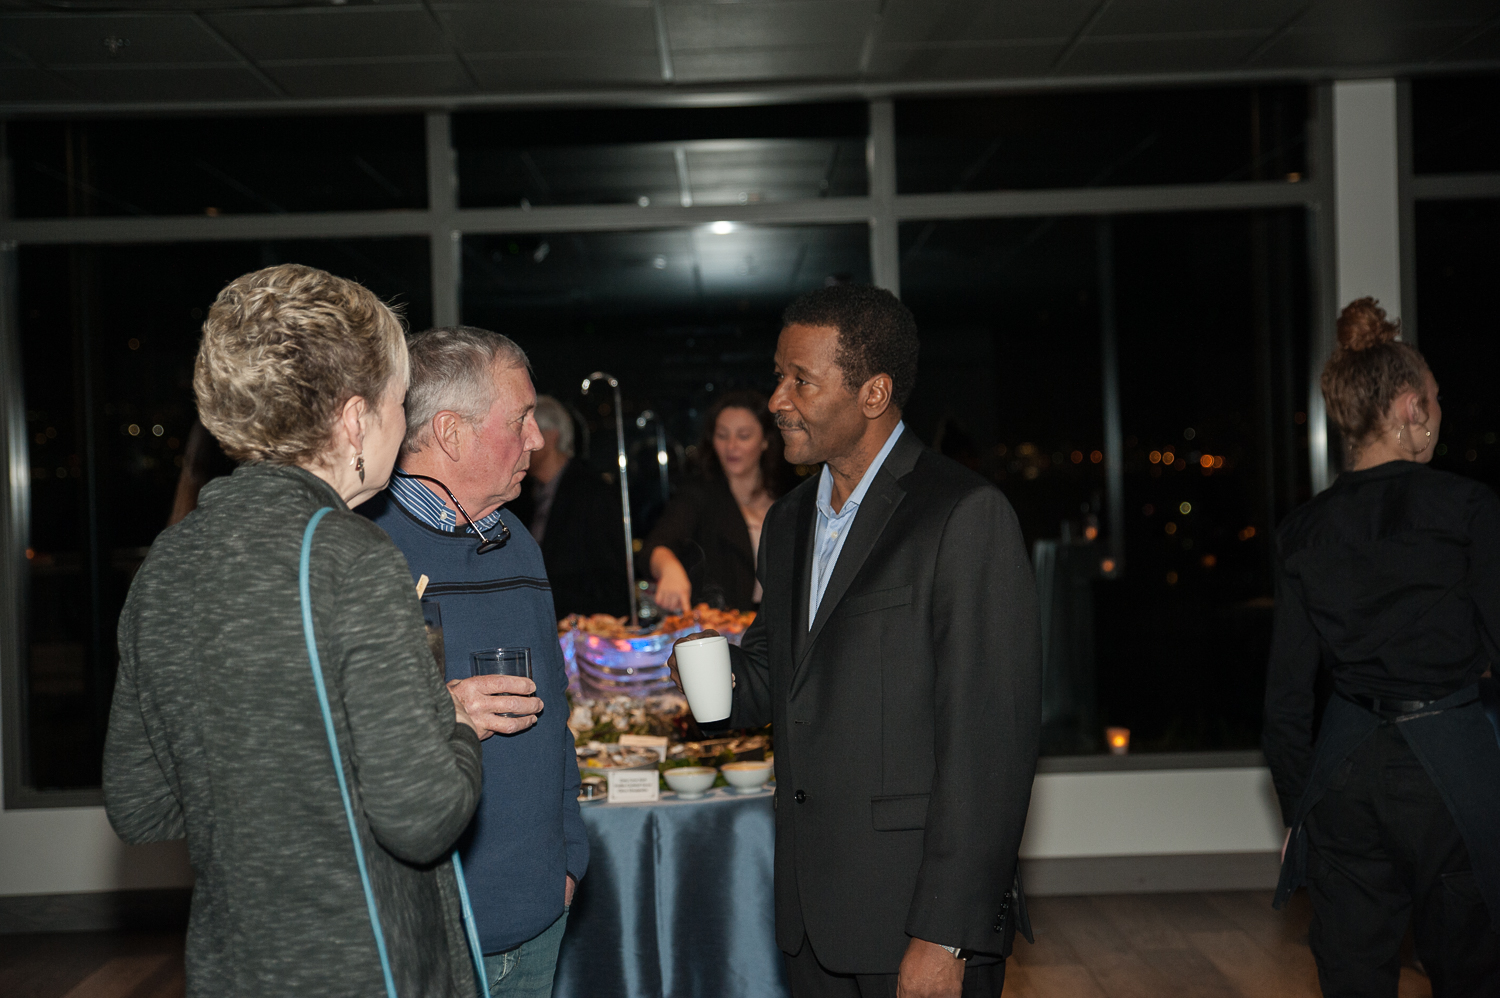 "While we said goodbye on air and online to KOMO's beloved weatherman Steve Pool in November 2019, it's not official until there's a party - right?? KOMO family, industry friends and local VIPs gathered to celebrate the man, the myth, and the legend in style at{&nbsp;}<a  href=""https://docksideatdukes.com/"" target=""_blank"" title=""https://docksideatdukes.com/"">Dockside at Dukes</a>{&nbsp;}in Seattle. Among many in attendance were KOMO colleagues Mary Nam, Dan Lewis, Eric Johnson, Connie Thompson, Janene Drafs and Scott Altus, radio personality Bender Cunningham, hair titan Gene Juarez and many, many more. Here's to you, Steve! (Image: Elizabeth Crook / Seattle Refined)"